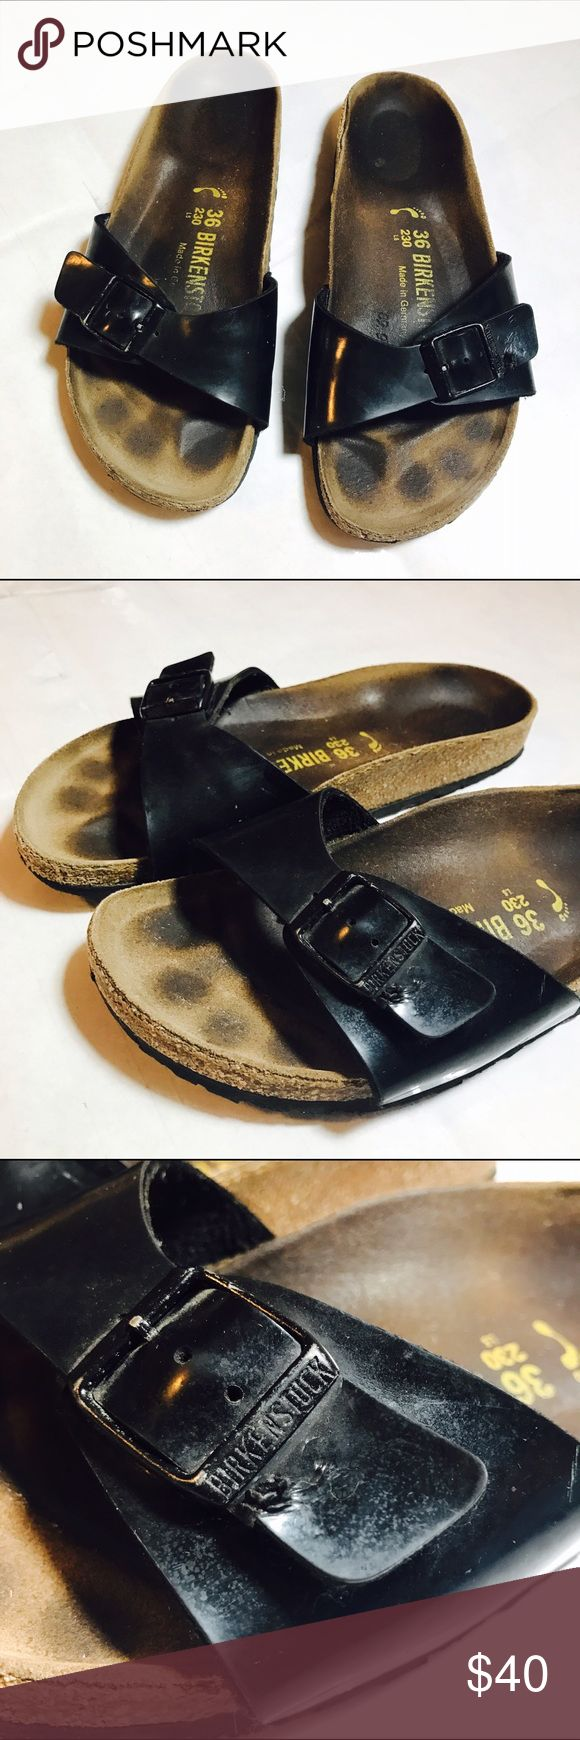 BIRKENSTOCK MADRID BLACK PATENT SANDALS PATENT leather Birkenstock, have some wear on them as you can see in the photos but still a ton of life left! Size 36 =5.5/6 US Birkenstock Shoes Sandals